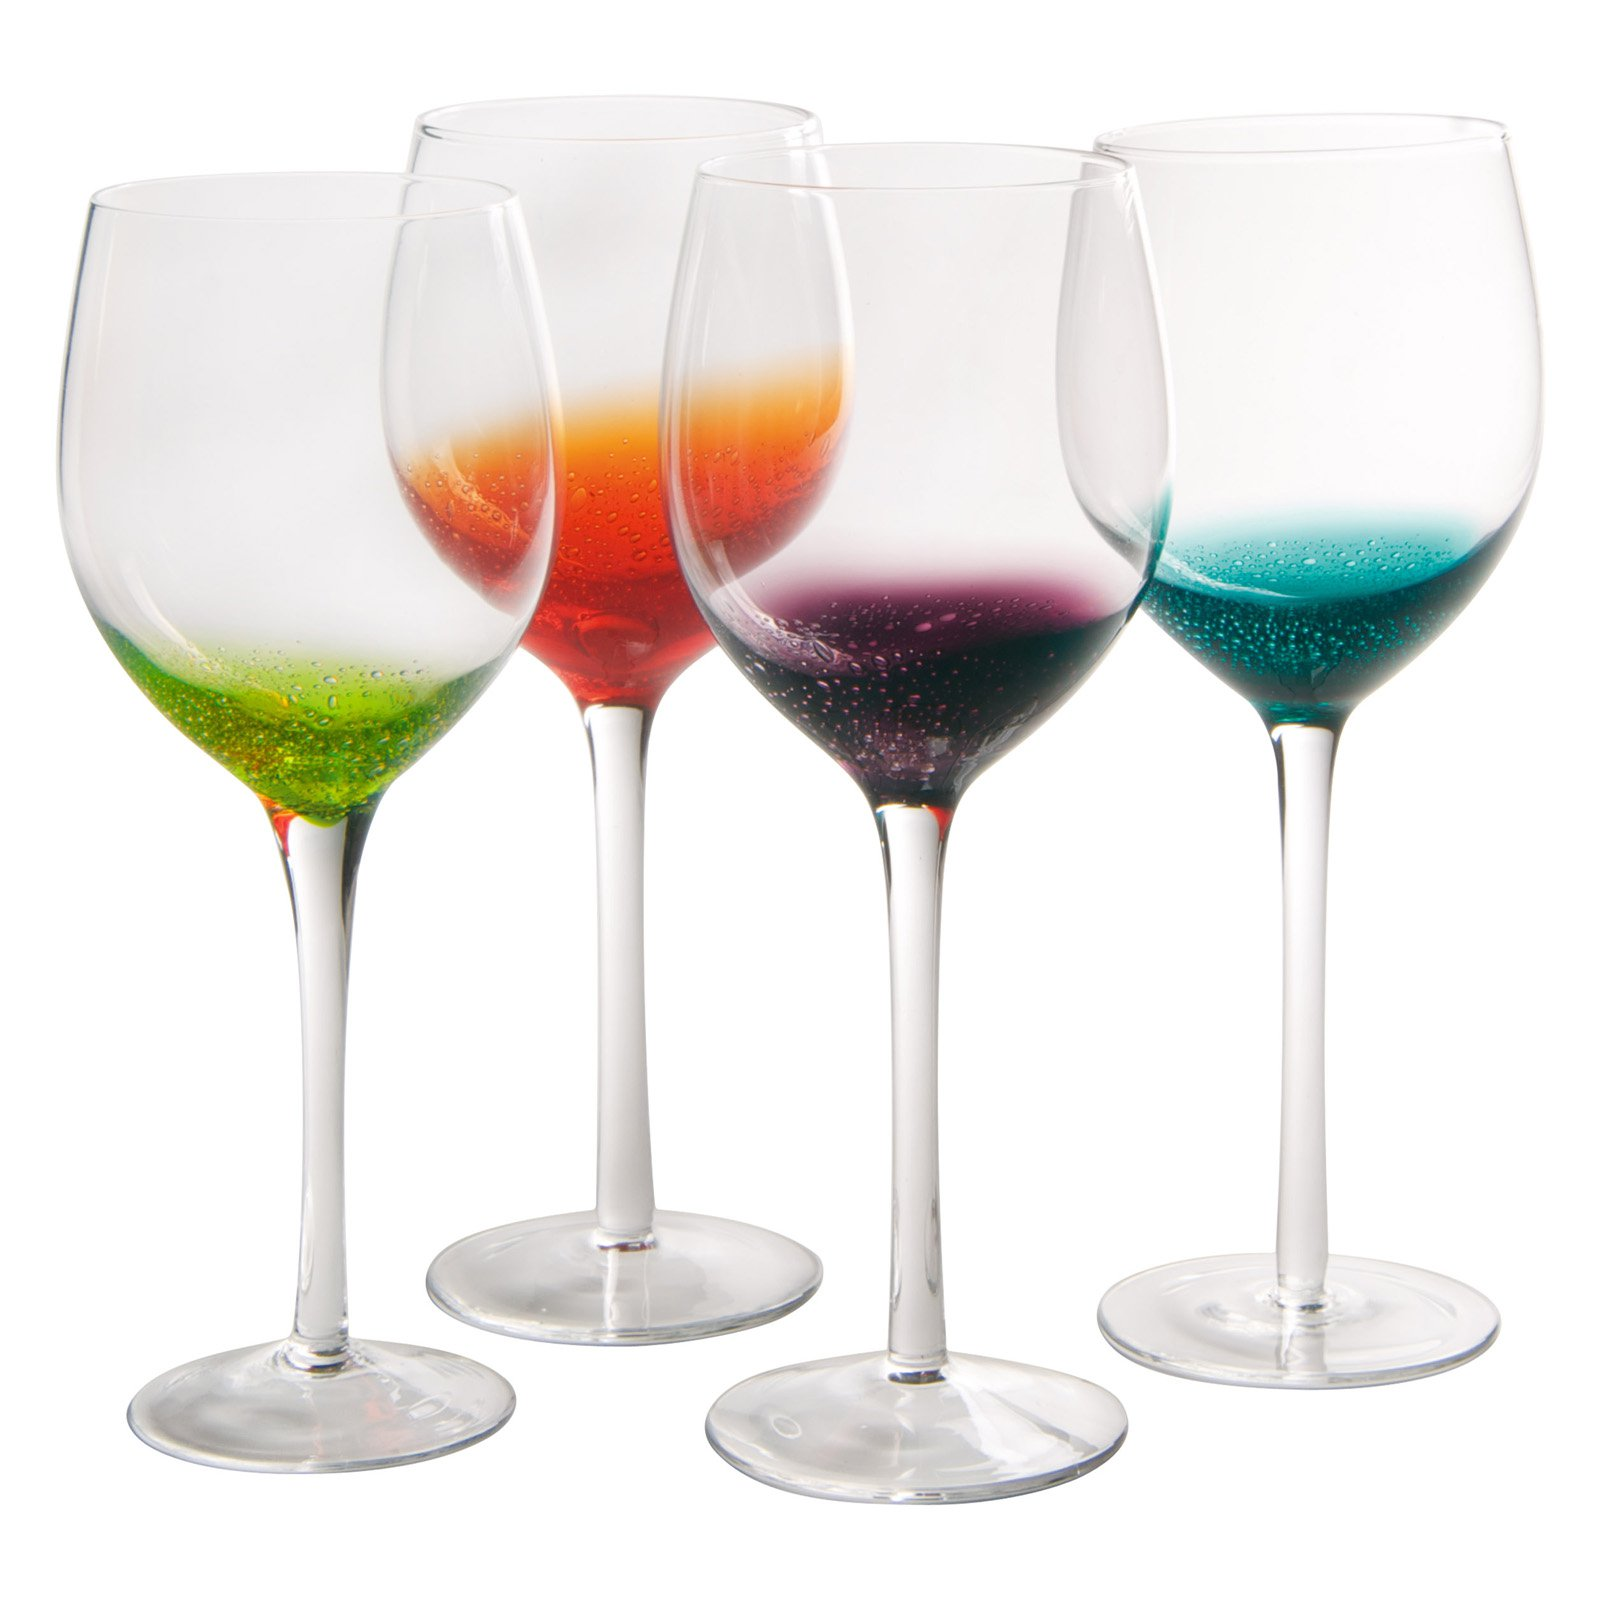 Artland Inc. Fizzy Goblet Glasses - Set of 4